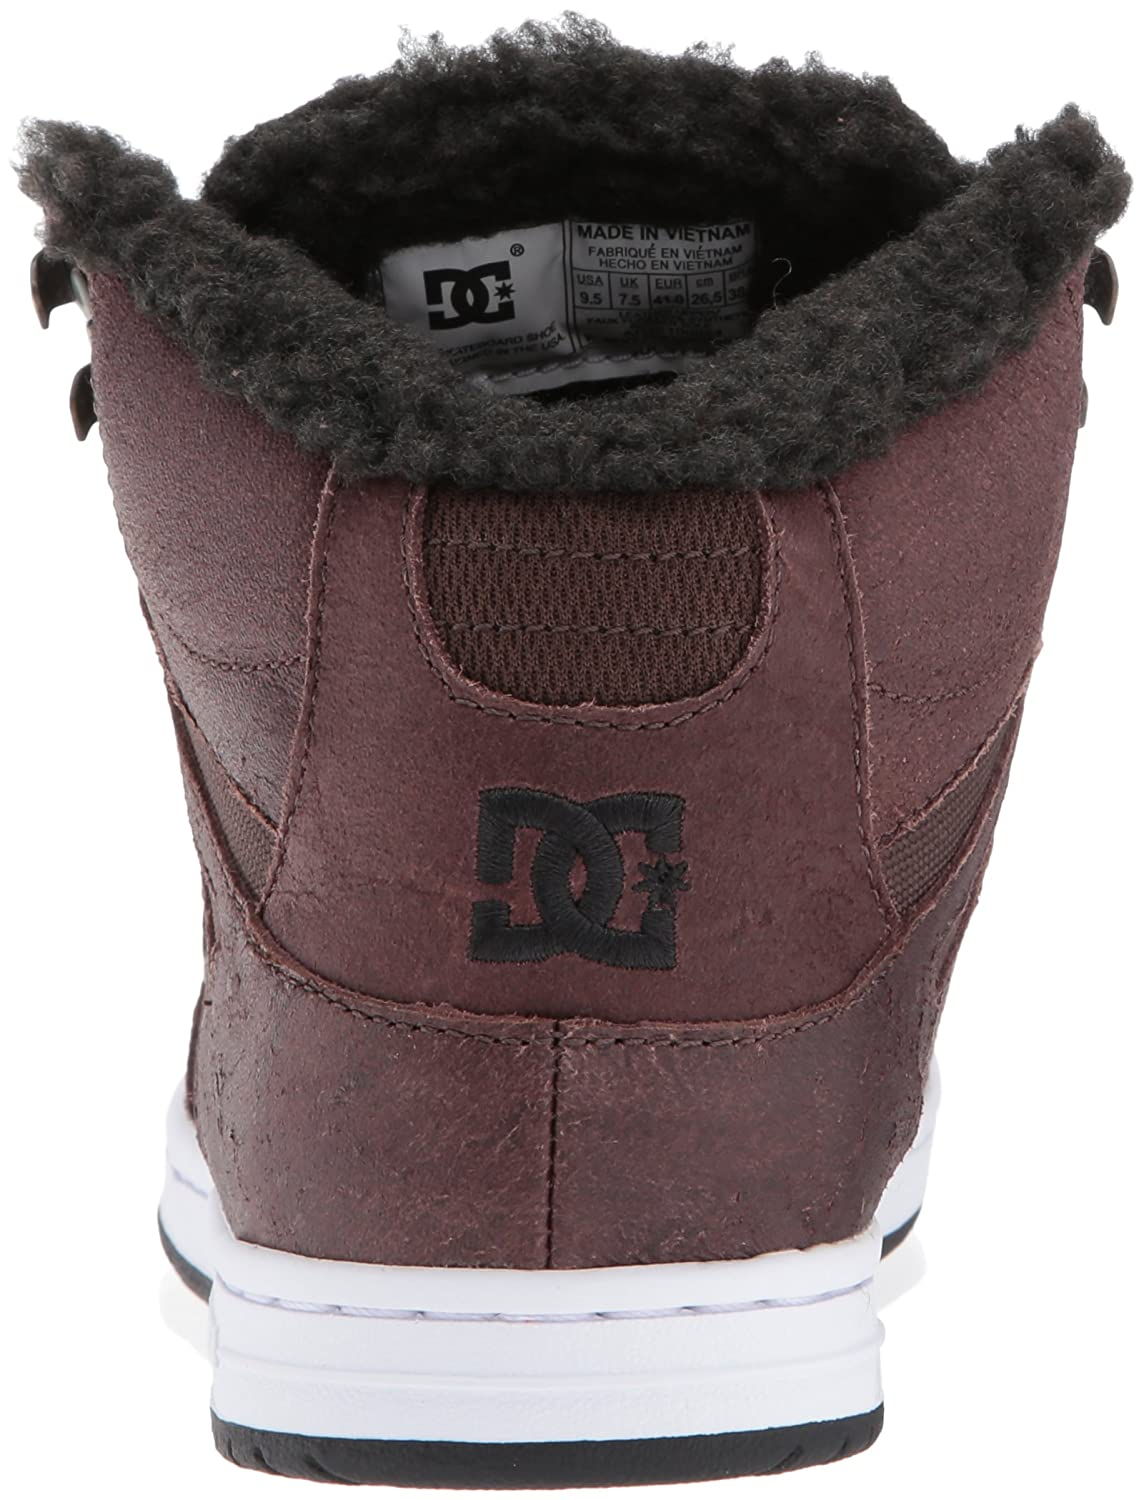 quality design 0c734 66ac7 Zapato de skate Wnt High rebote DC para mujer Marrón  Chocol